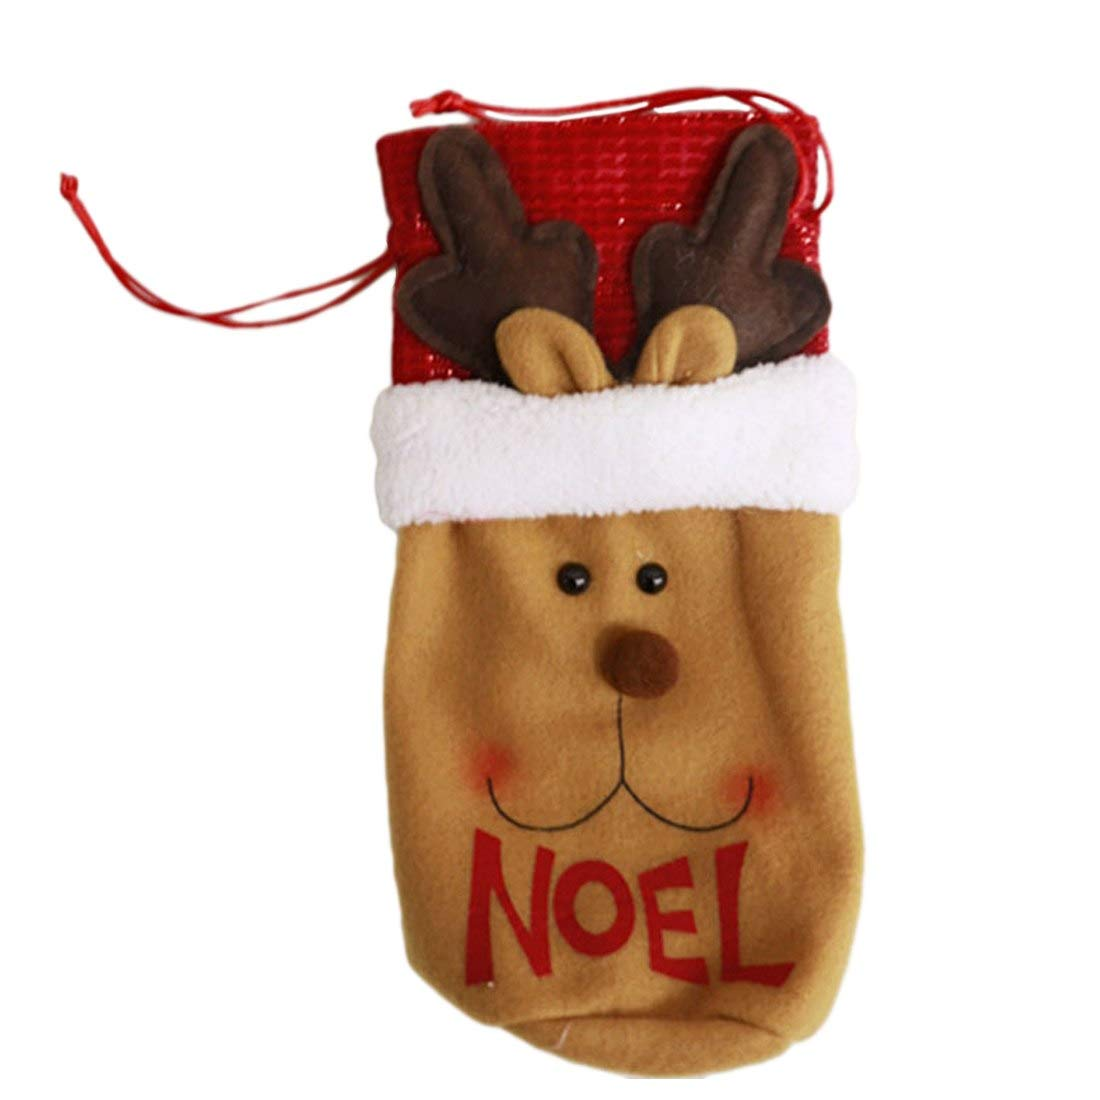 Clothes Decoration - Good 1 Pc Santa Claus Red Wine Bottle Cover Bags Cute Christmas Gift Holders Dinner Table - Holder Clothes Cover Patch Accessories Decoration